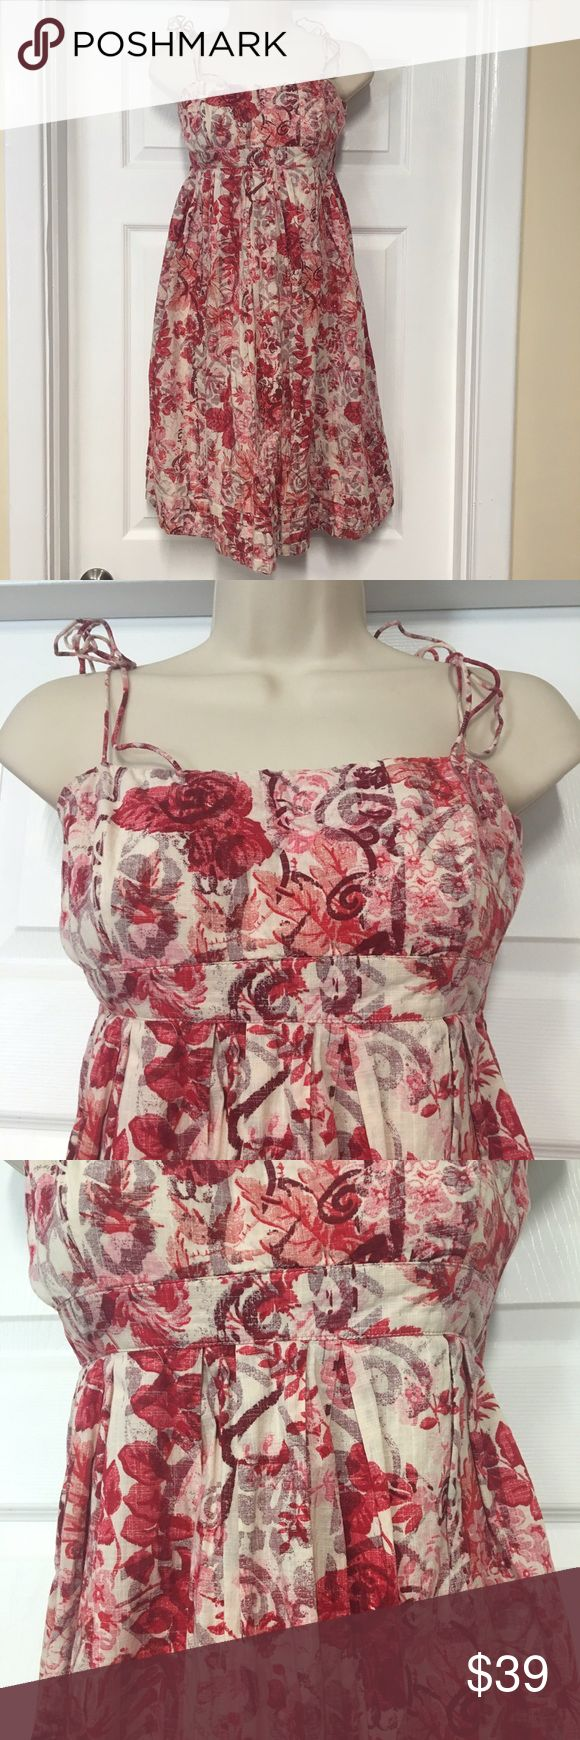 GAP Red and white floral spaghetti strap sundress Beautiful sundress. Perfect for a vacation or a lunch date. Pier with some cute sandals or wedges and a widebrimmed hat for a great look. Add heels to dress up! This dress is from the gap it is a size 6 and it is 100% cotton shell and lining. Straps tie so you can adjust them. Very flattering fit in an effortless summer look GAP Dresses Midi